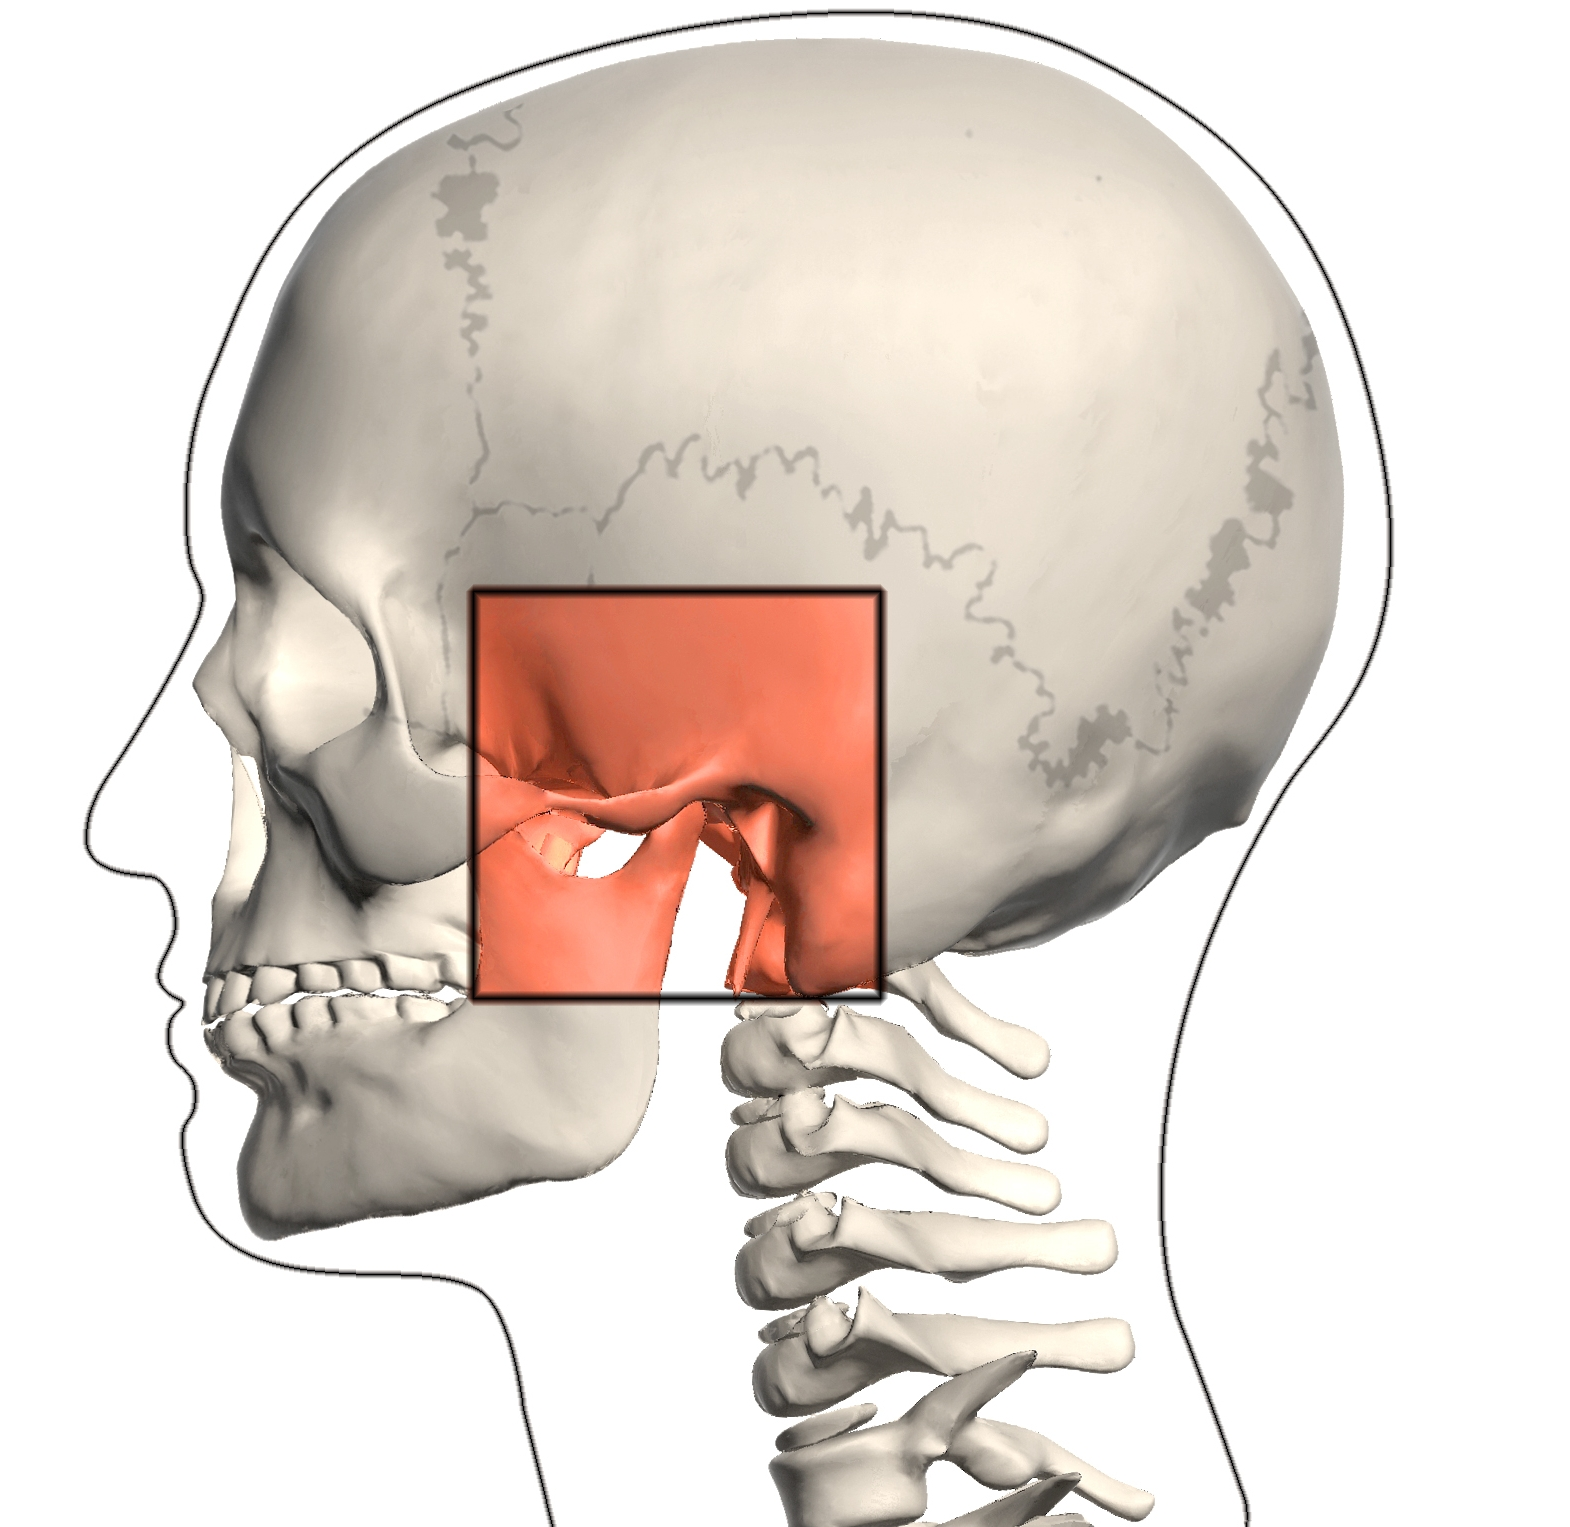 medium resolution of tmj stands for the temporomandibular joint temporal like the temple bone of your skull and mandible meaning your jaw bone